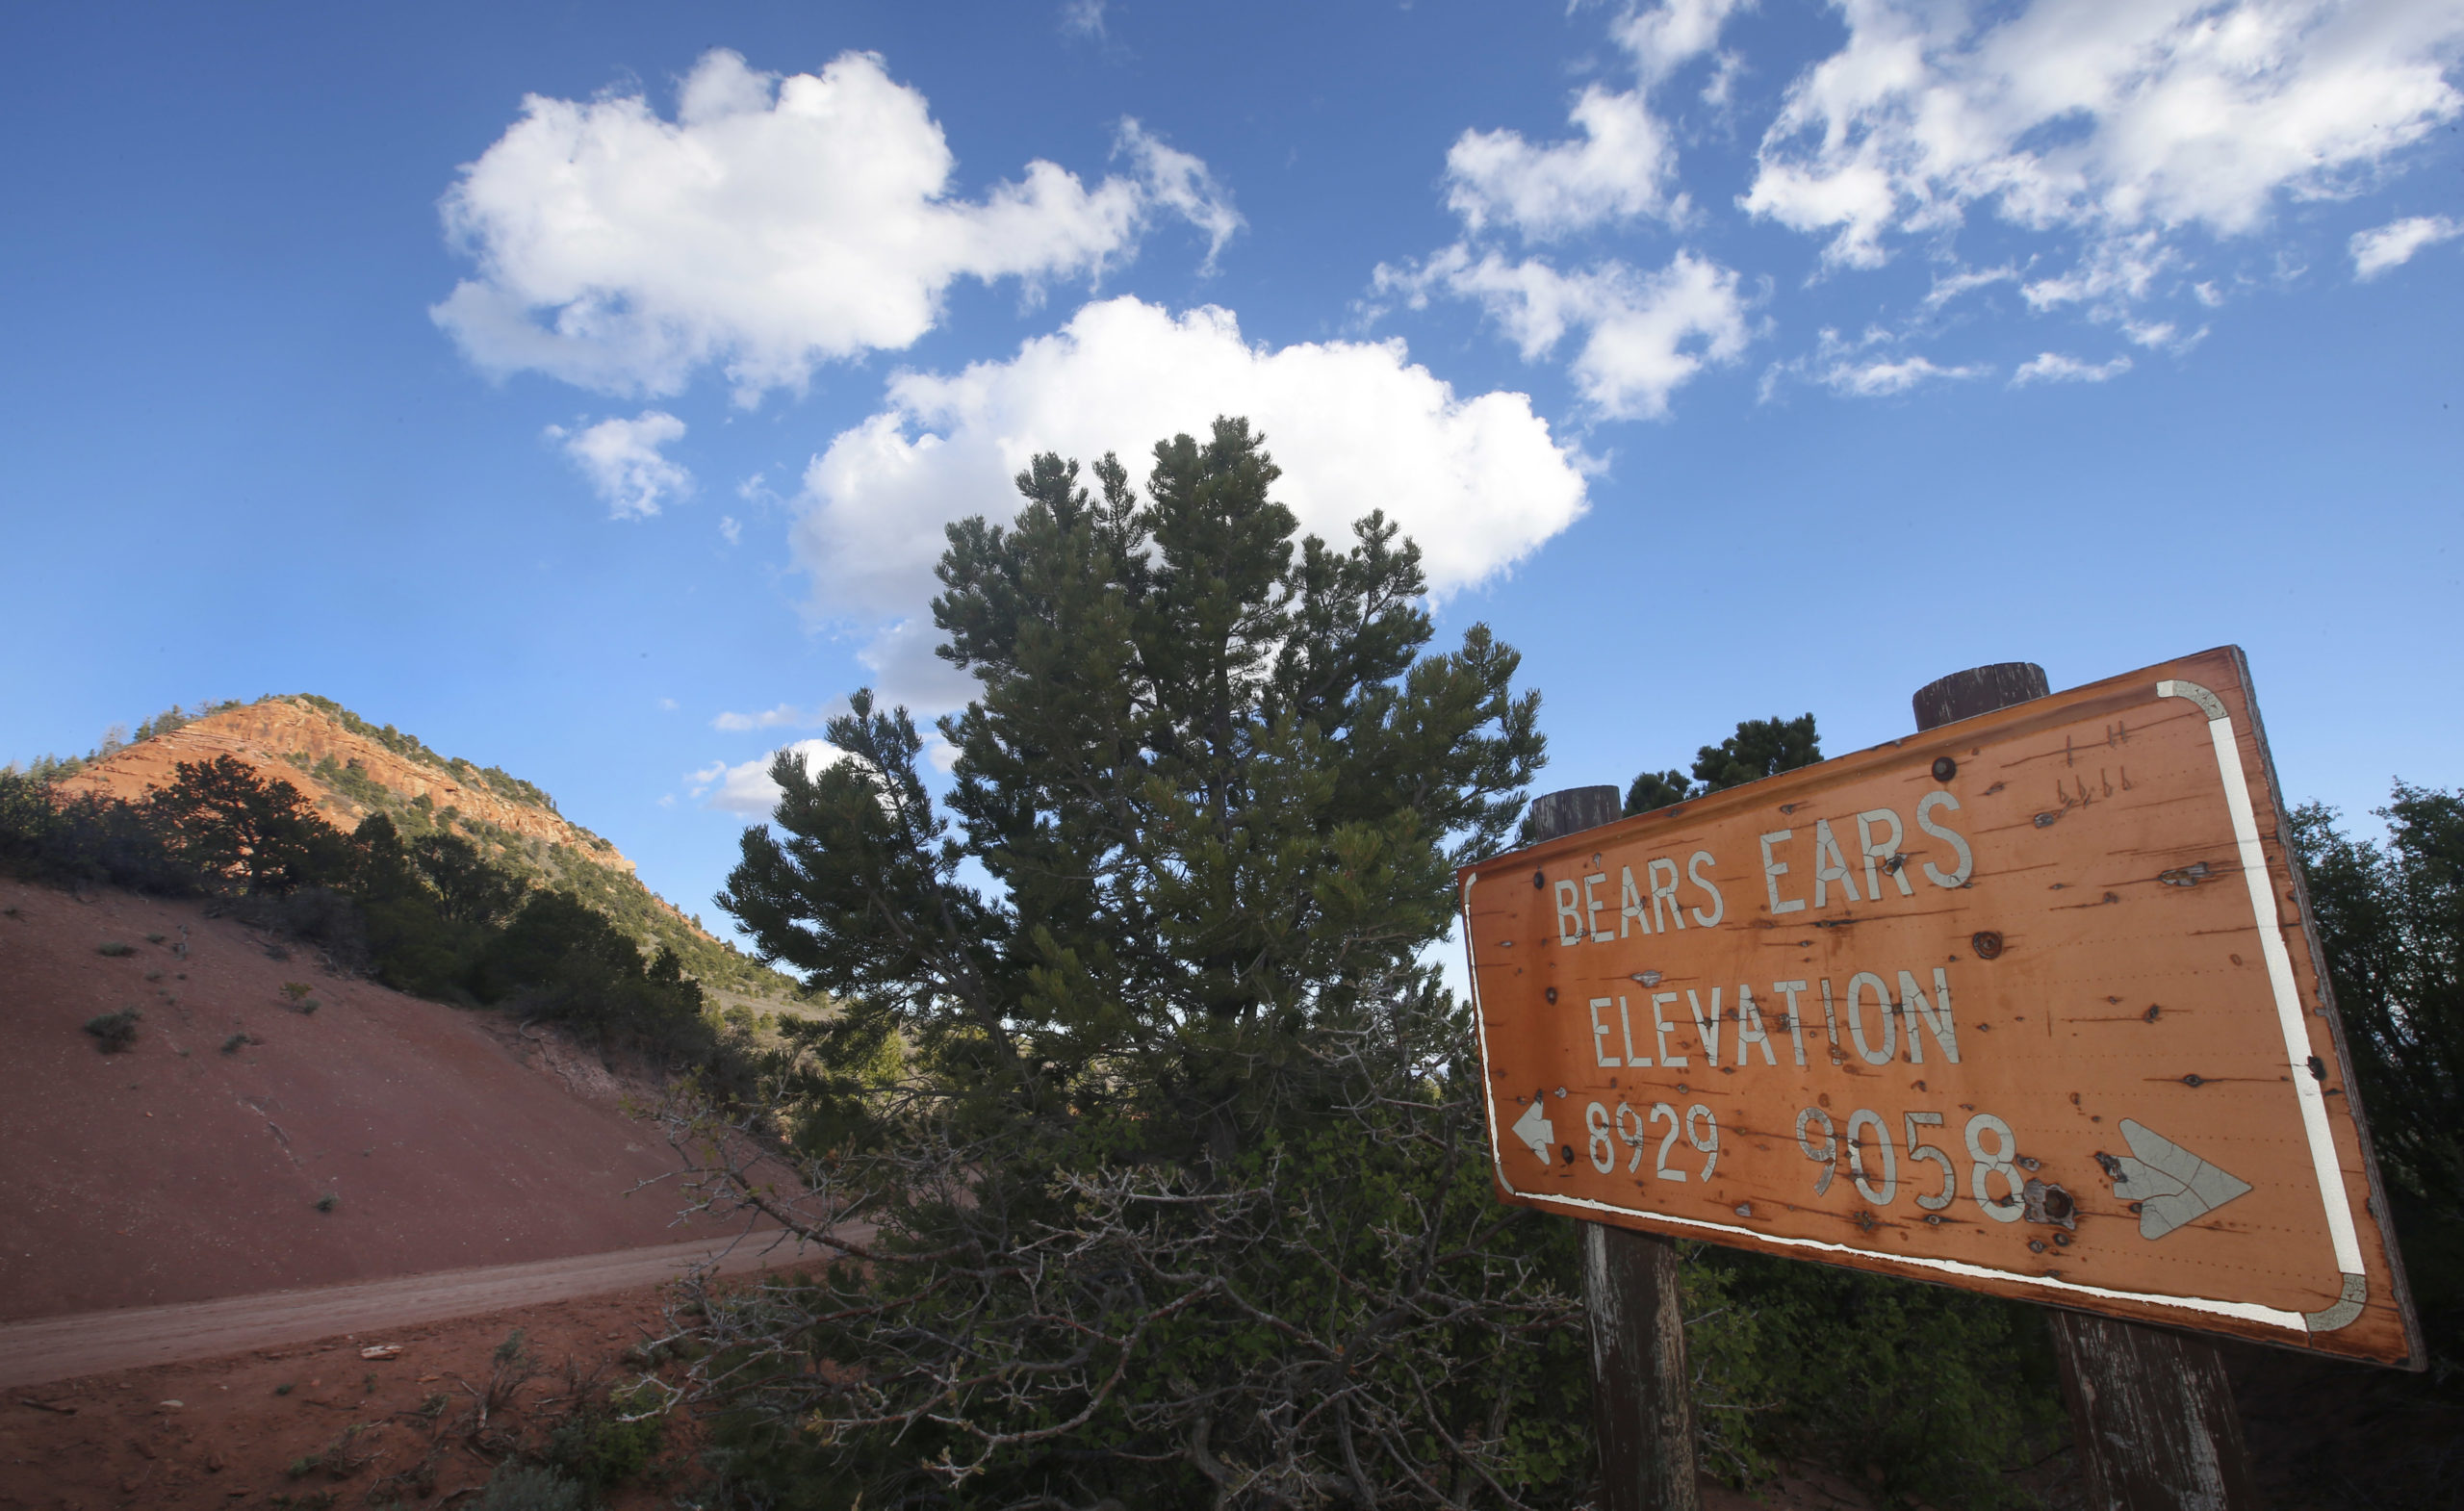 A sign gives the elevation of an area of the Bears Ears National Monument in May 2017 outside Blanding, Utah. (George Frey/Getty Images)